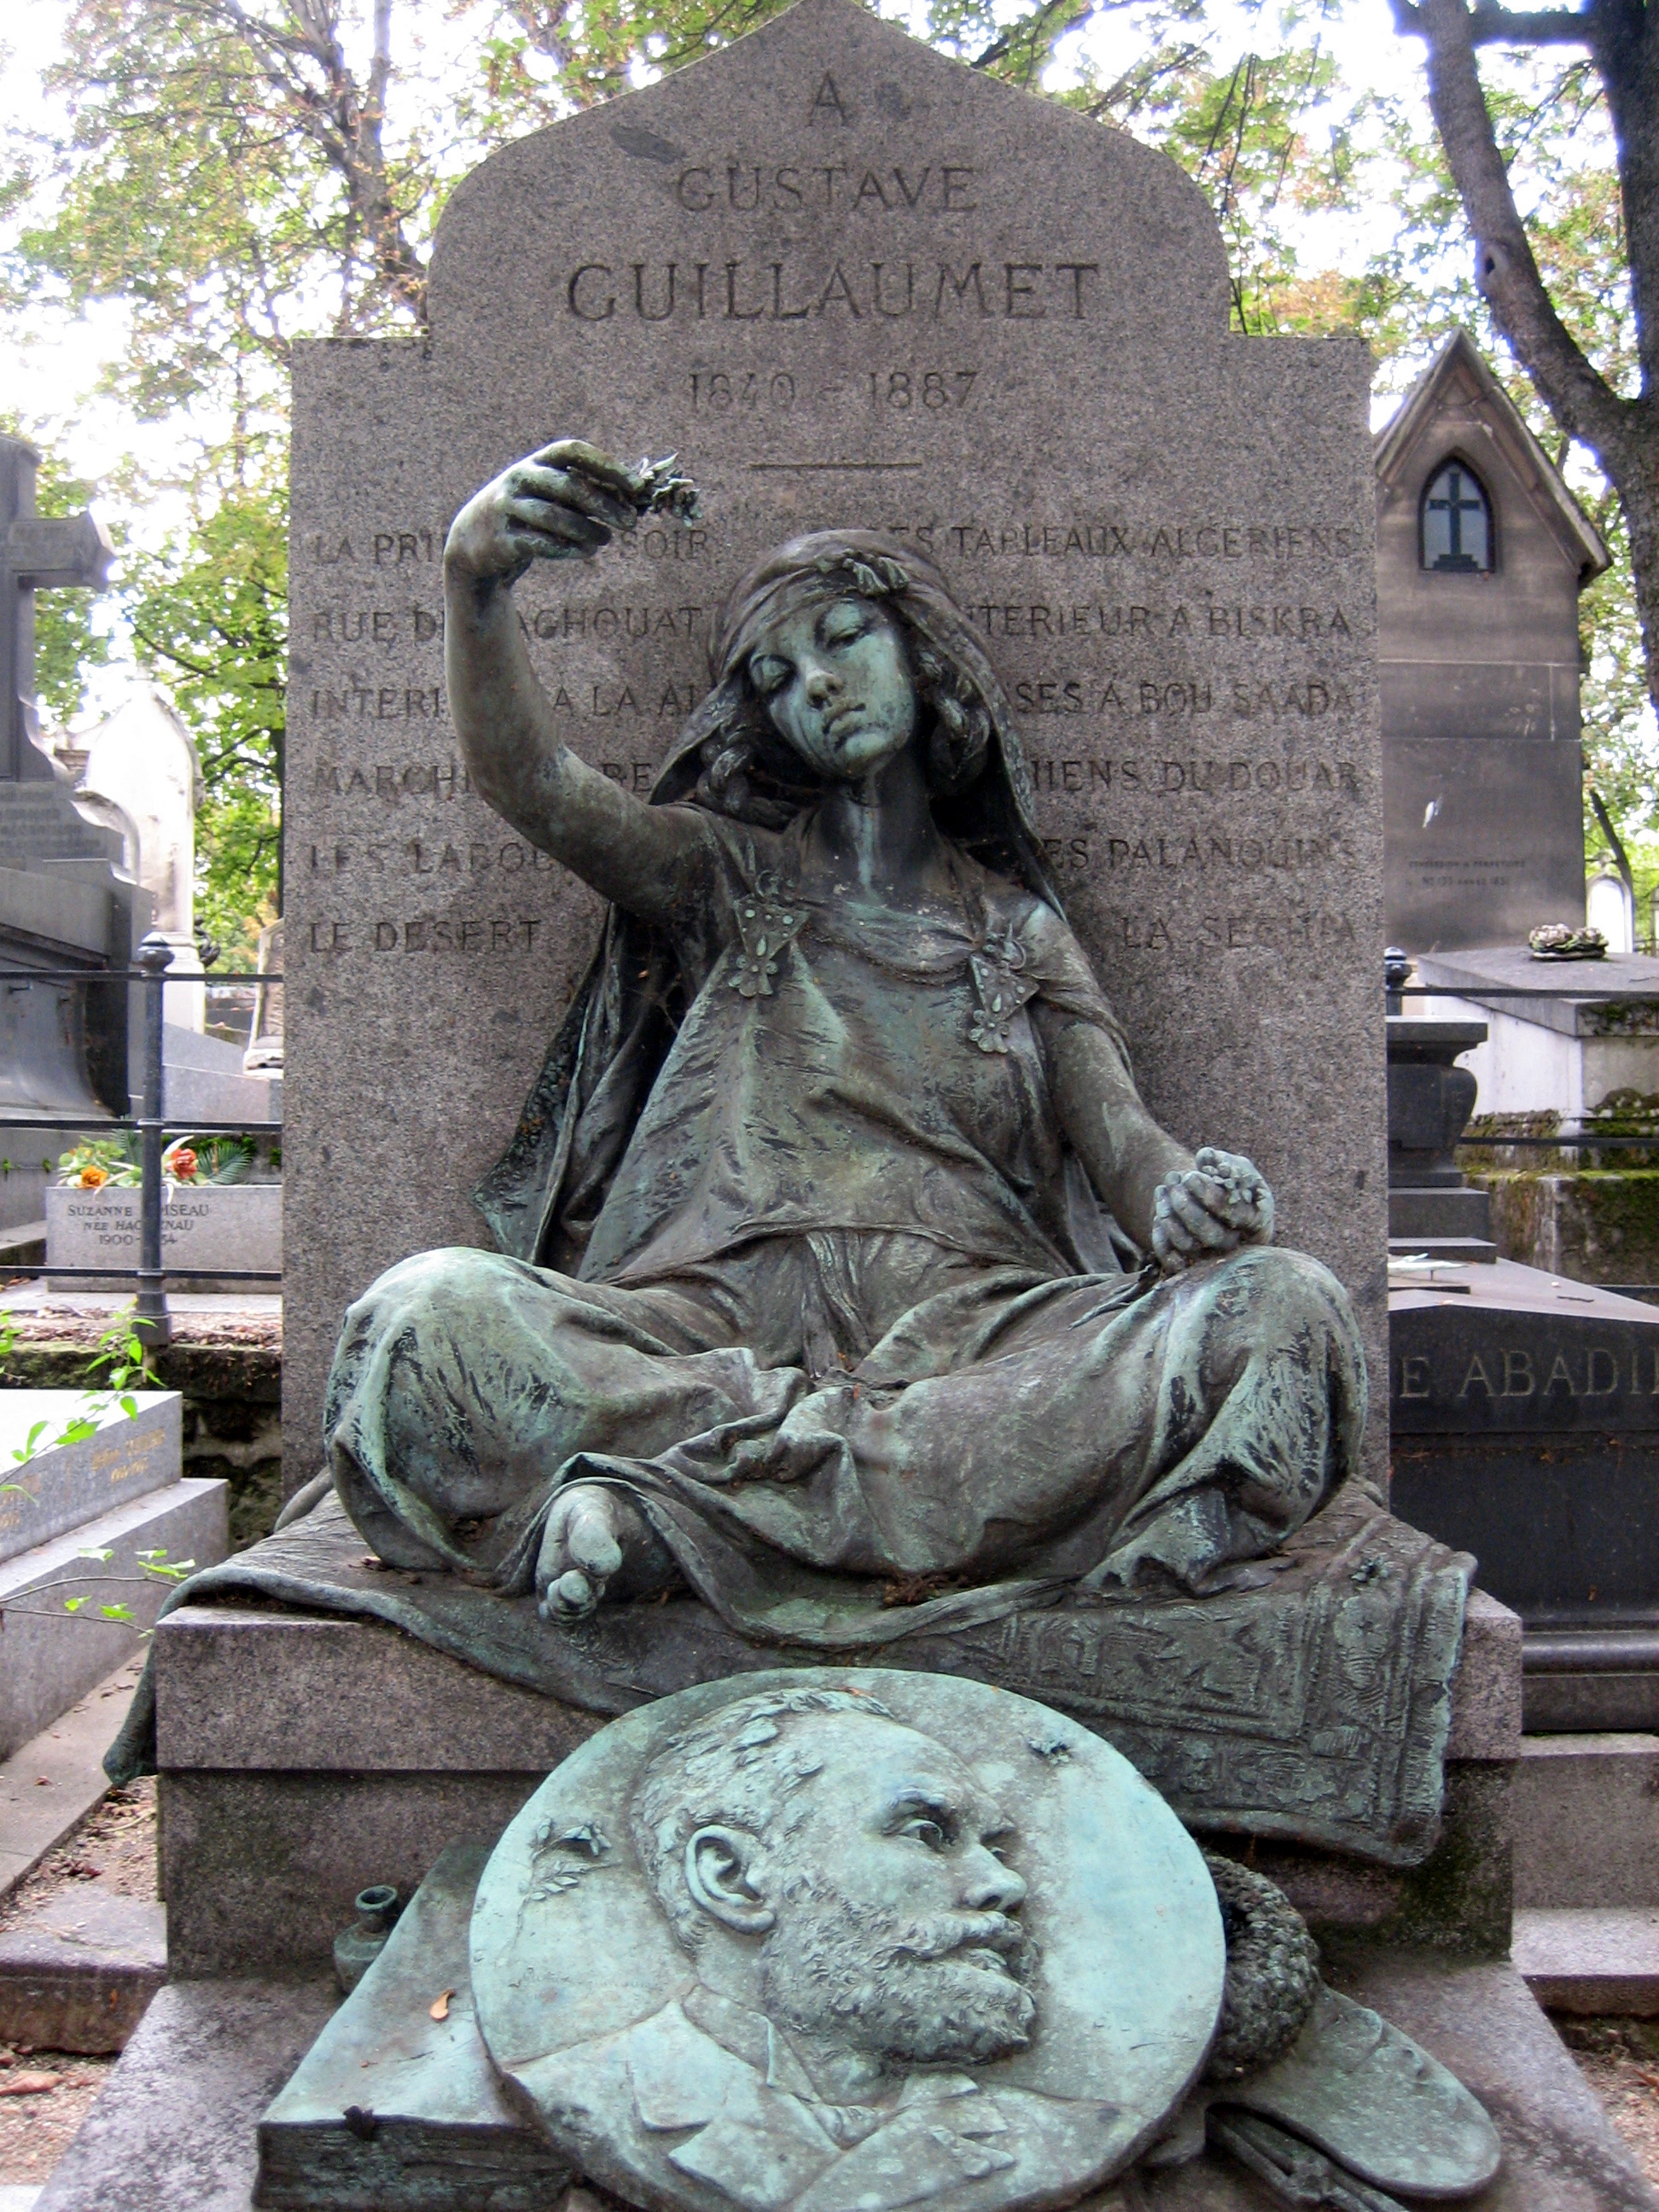 Figure 10. Louis­Ernest­Barrias, Tomb of Gustave Guillaumet, 1890, Montparnasse Cemetery, Paris.